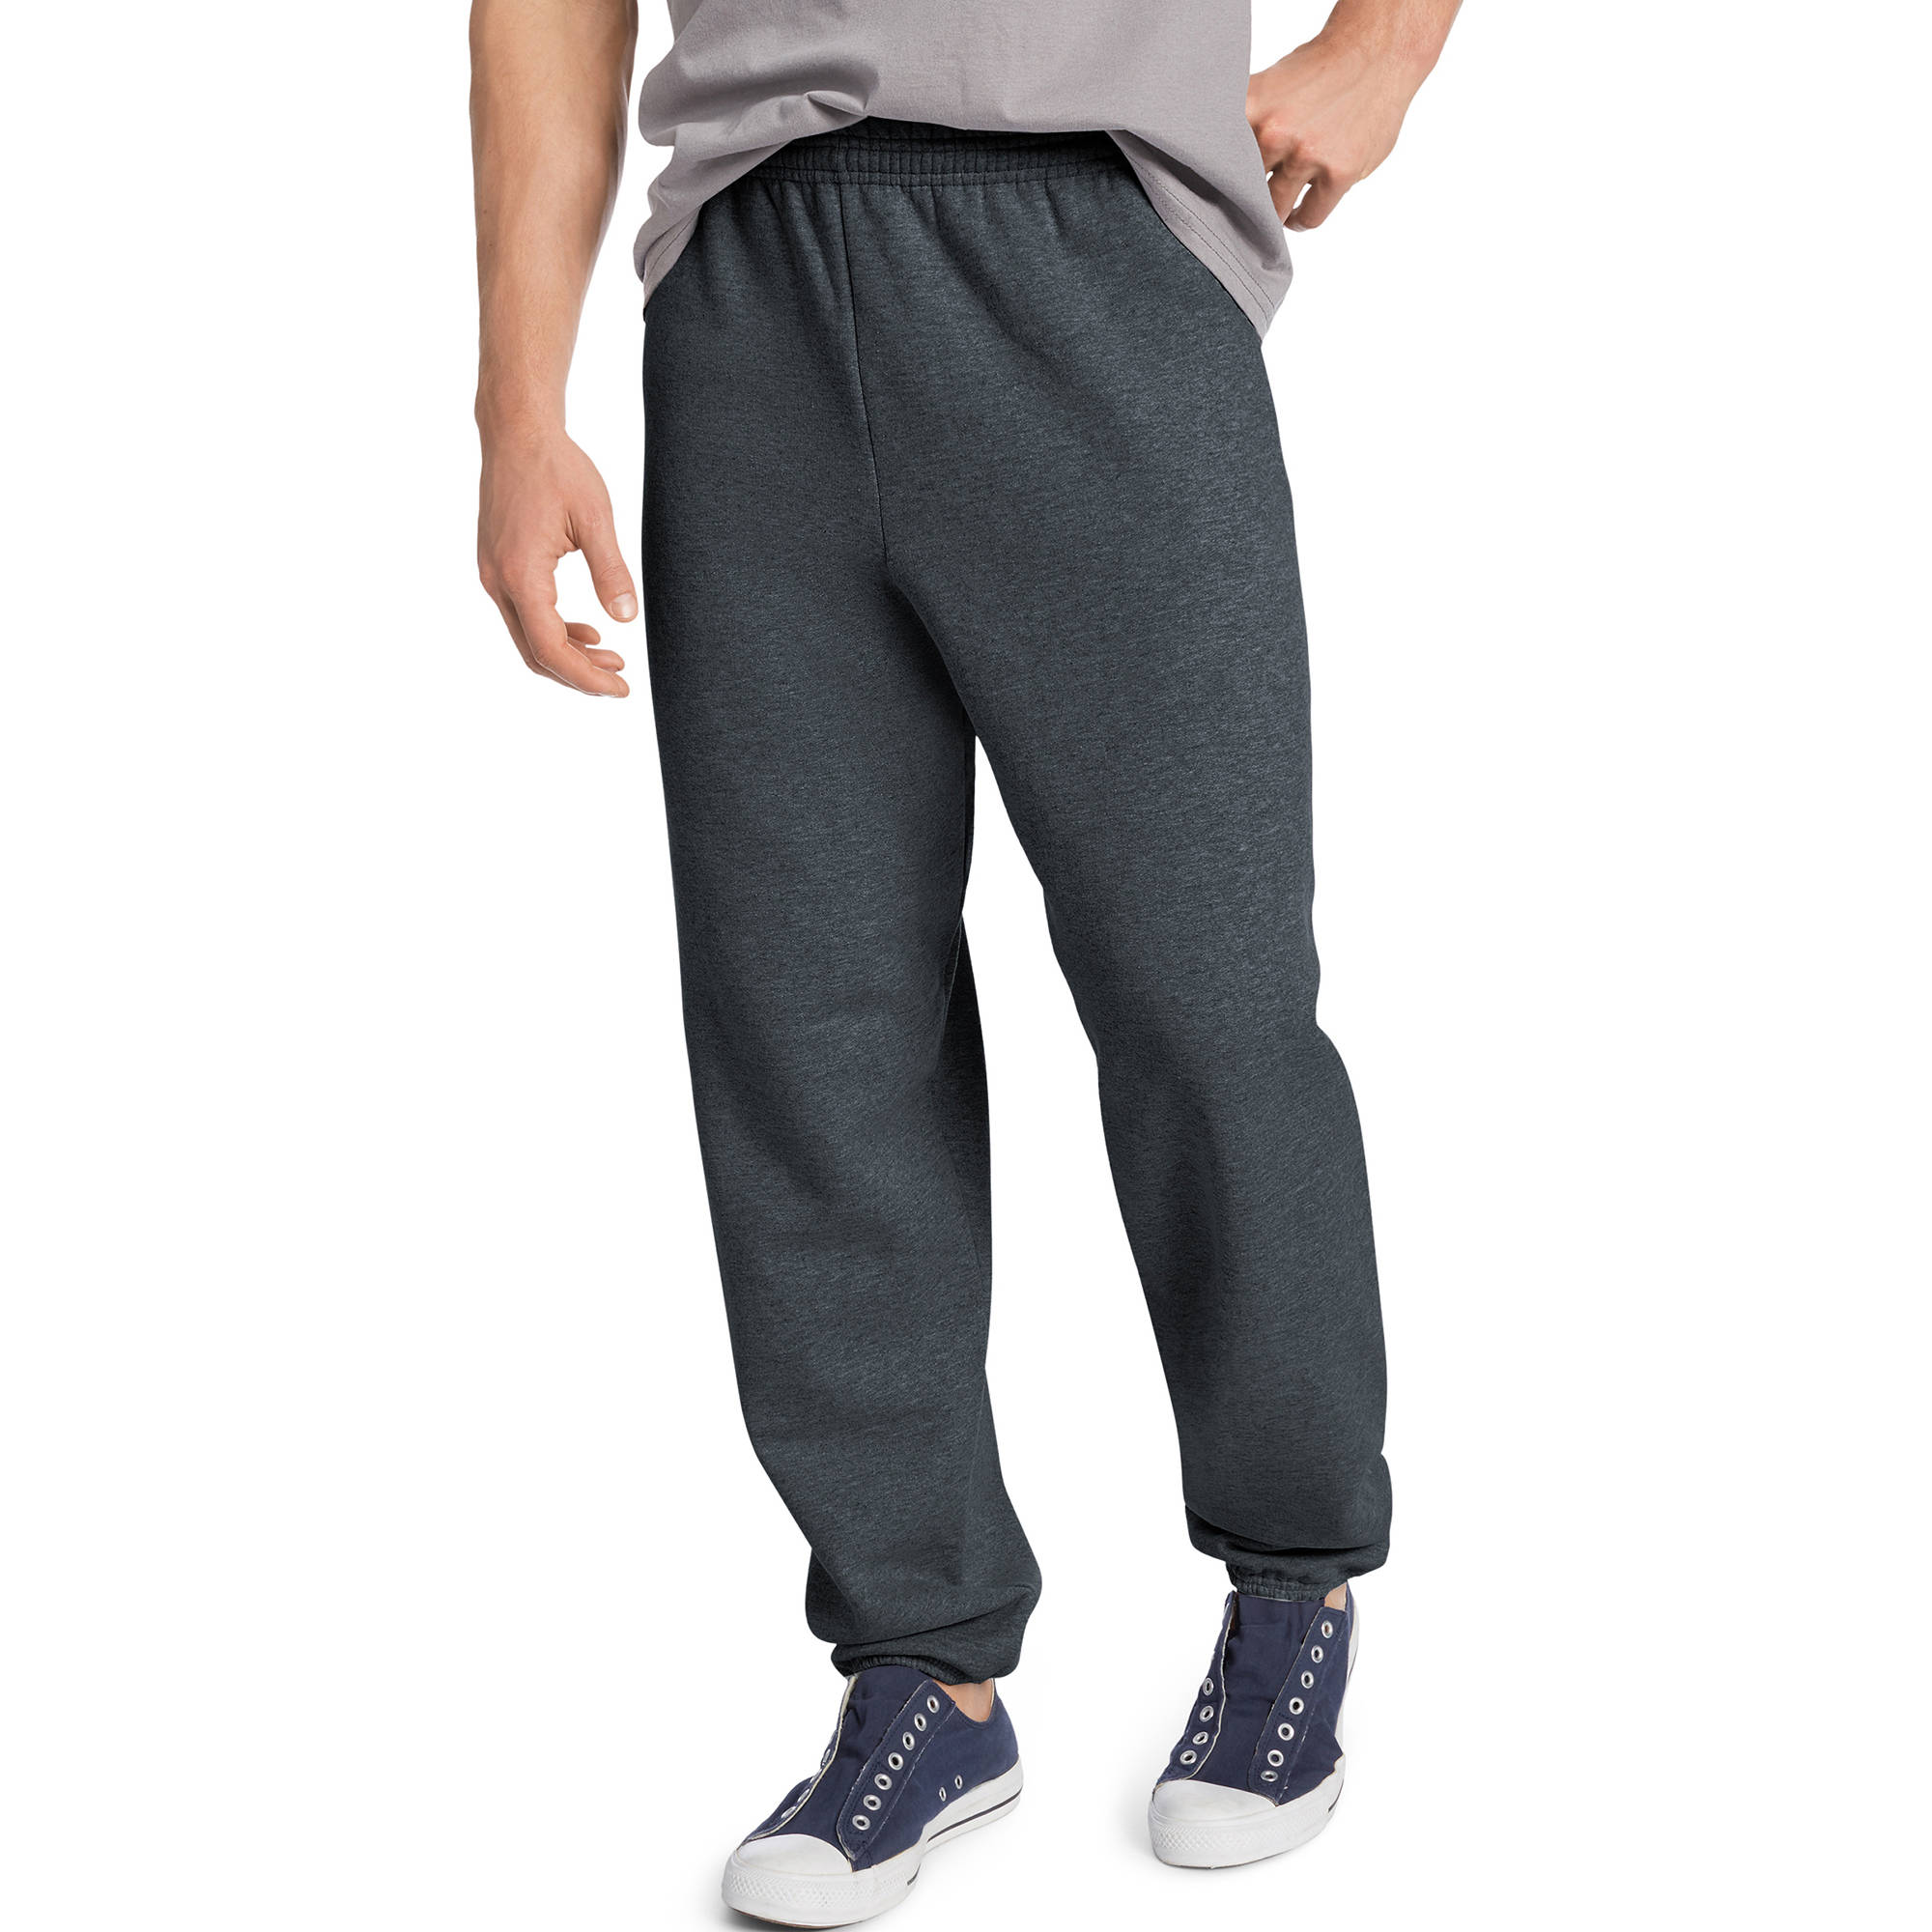 Hanes Men's EcoSmart Elastic Bottom 32 Inch Inseam Sweatpants, Charcoal Sweater